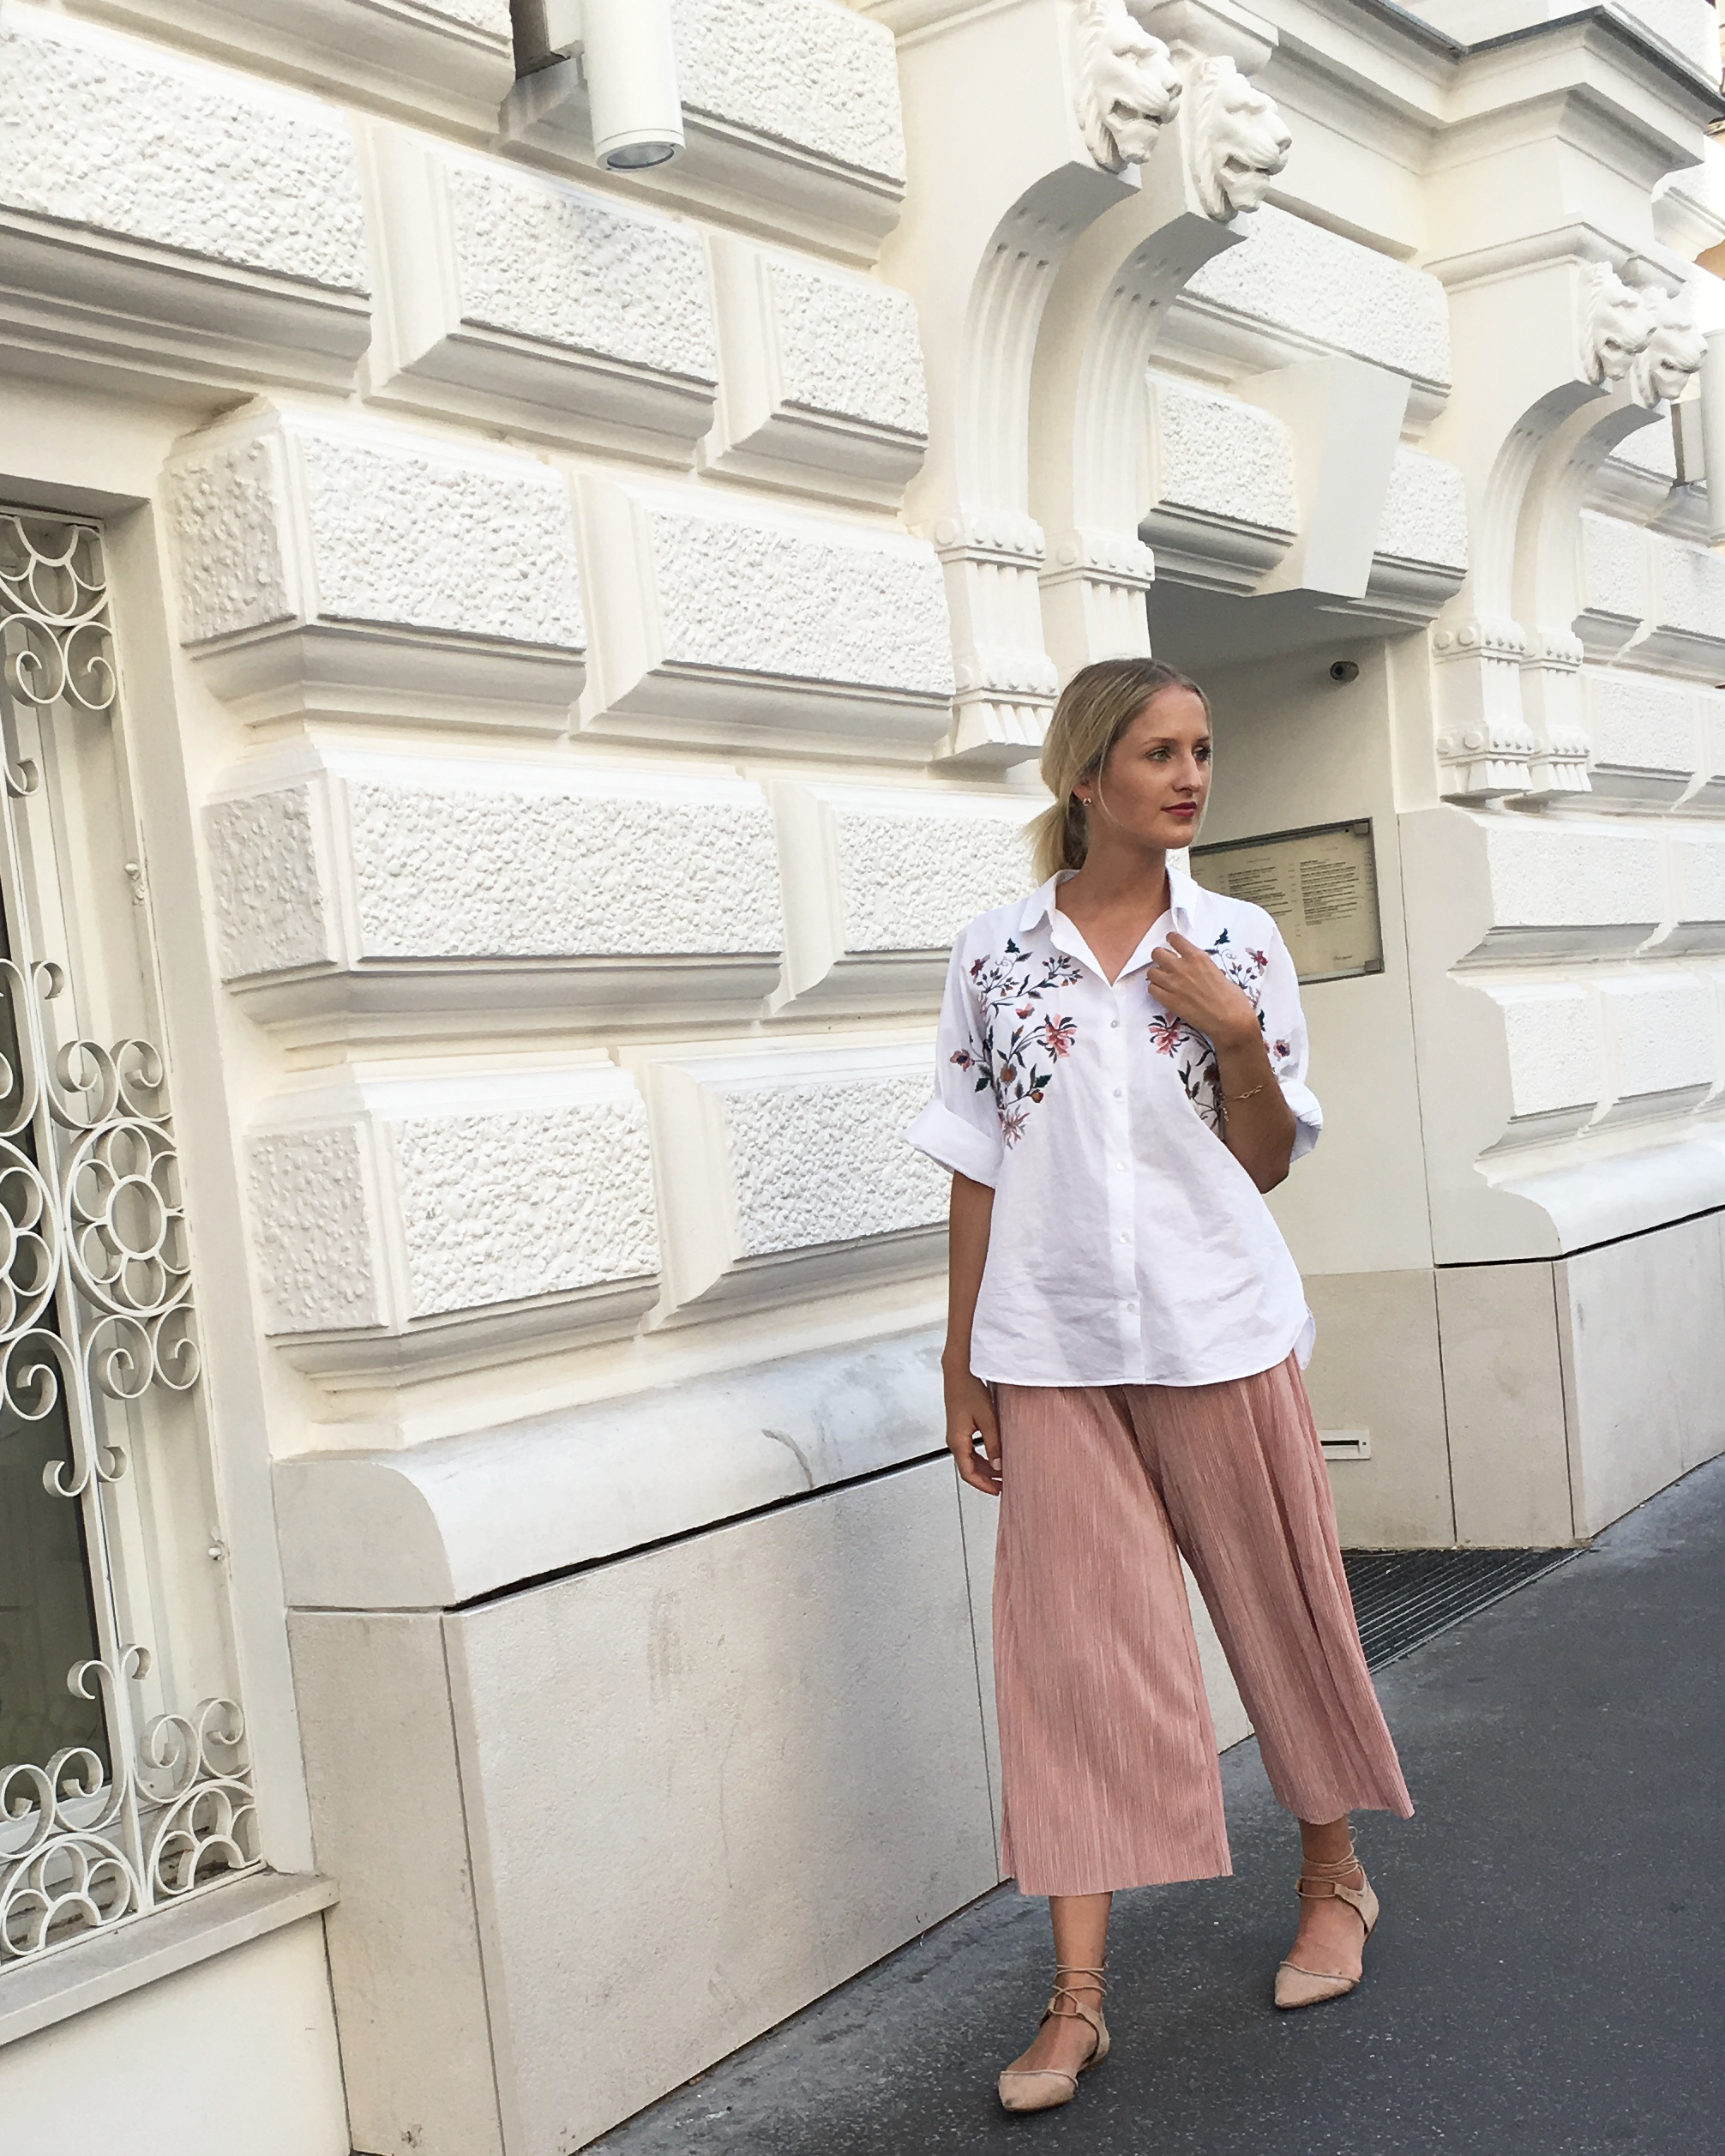 louisatheresa outfit look pastel summer flowers